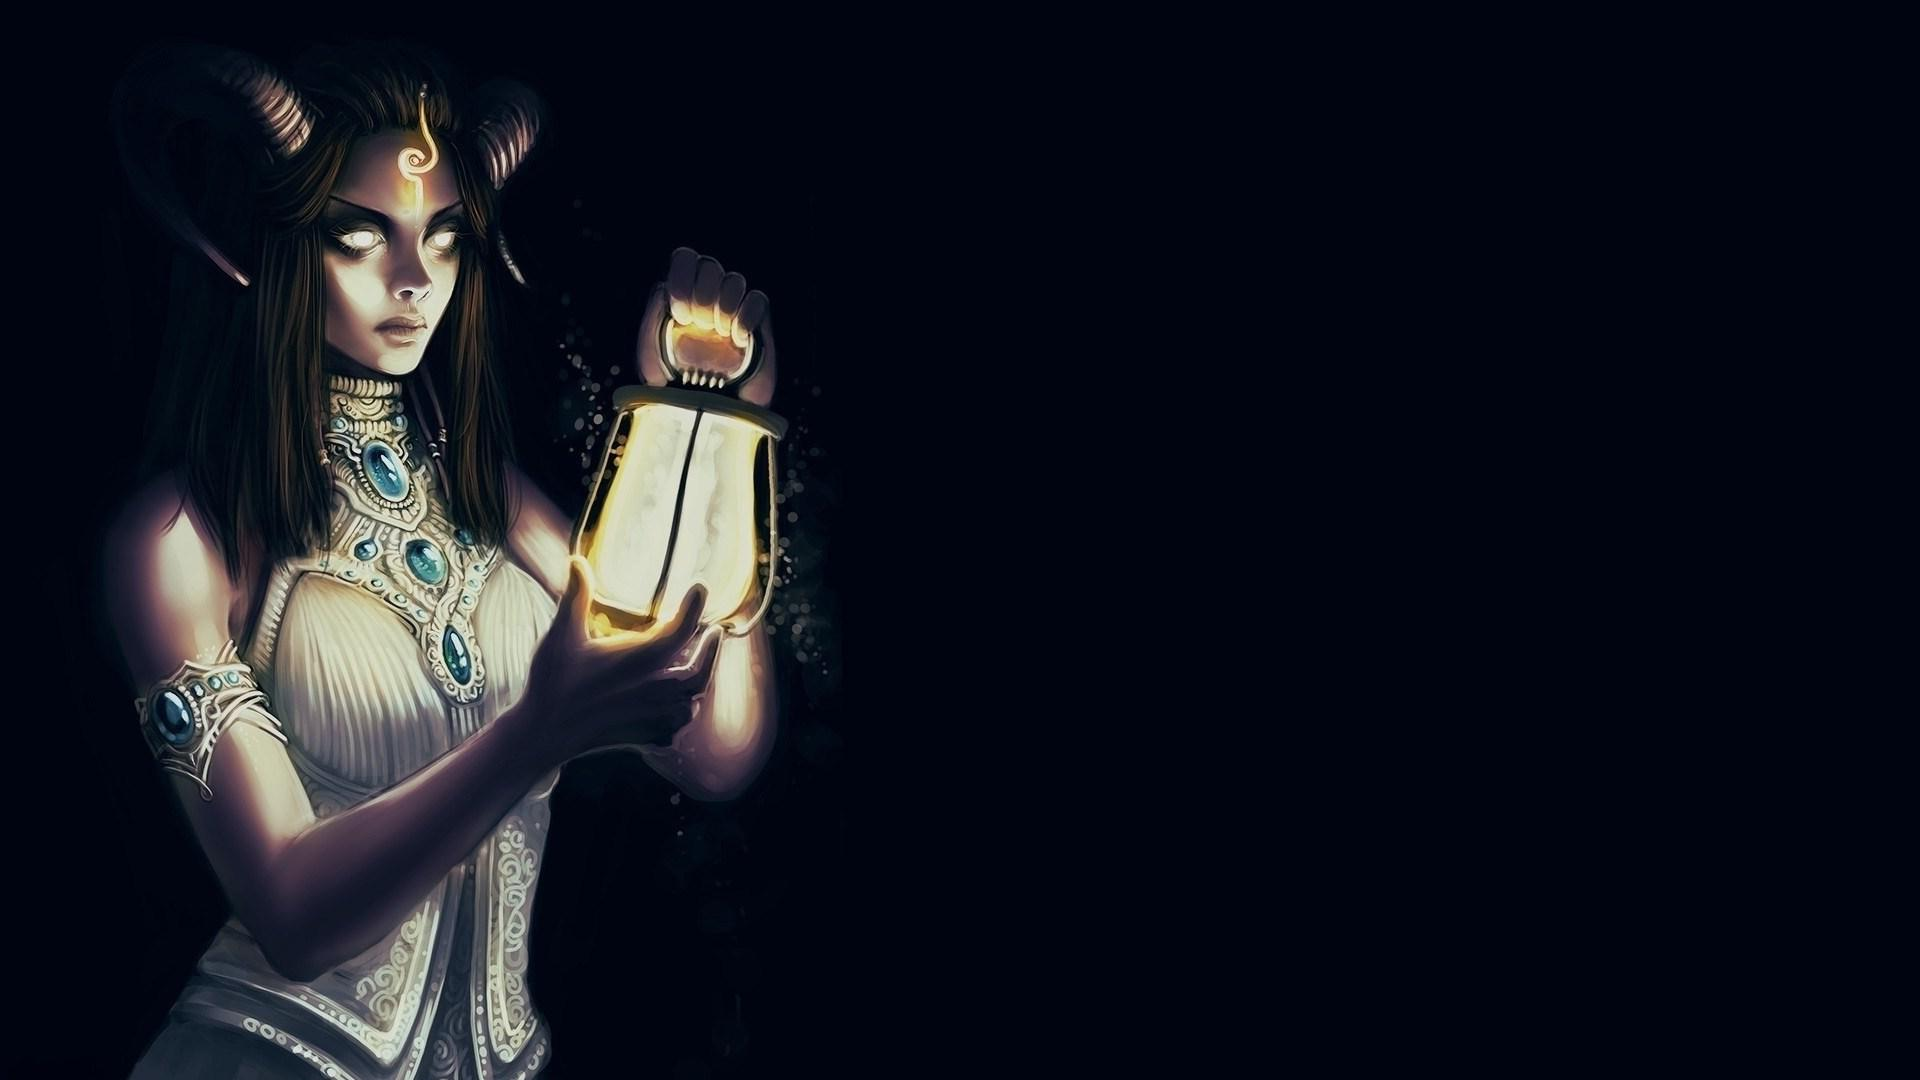 Free Download Cute Baby Wallpaper For Pc Hd Fantasy Horror Girl Holding Lamp Wallpaper Download